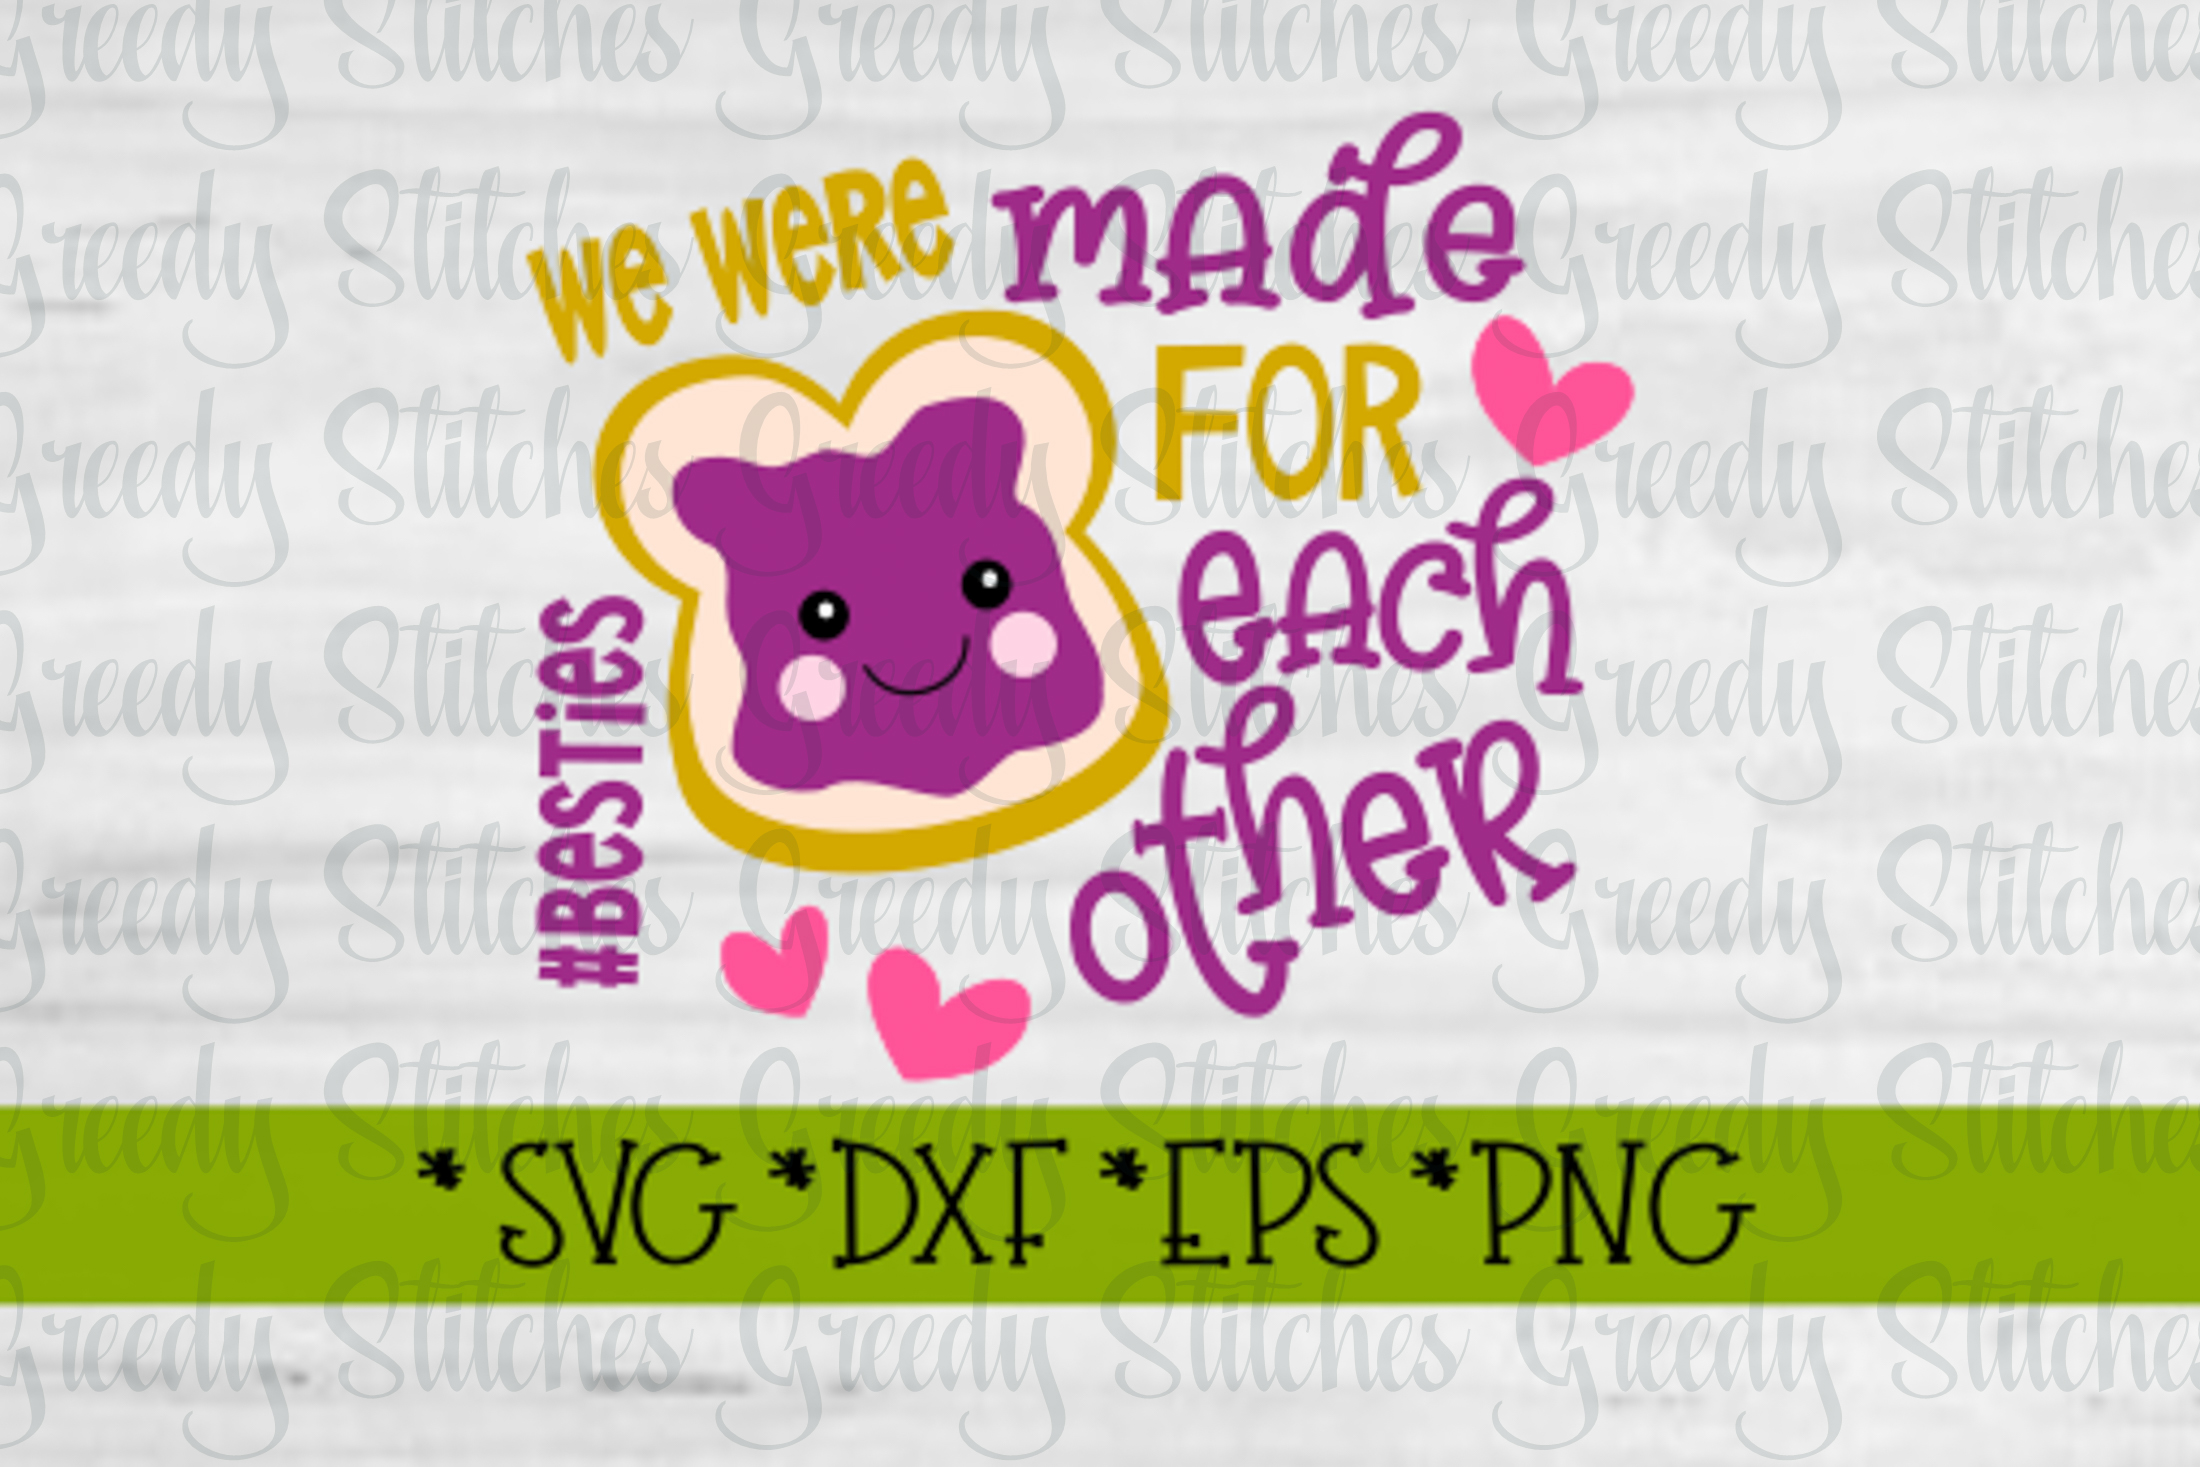 Peanut Butter & Jelly SVG DXF EPS PNG | Best Friends SVG DXF example image 2